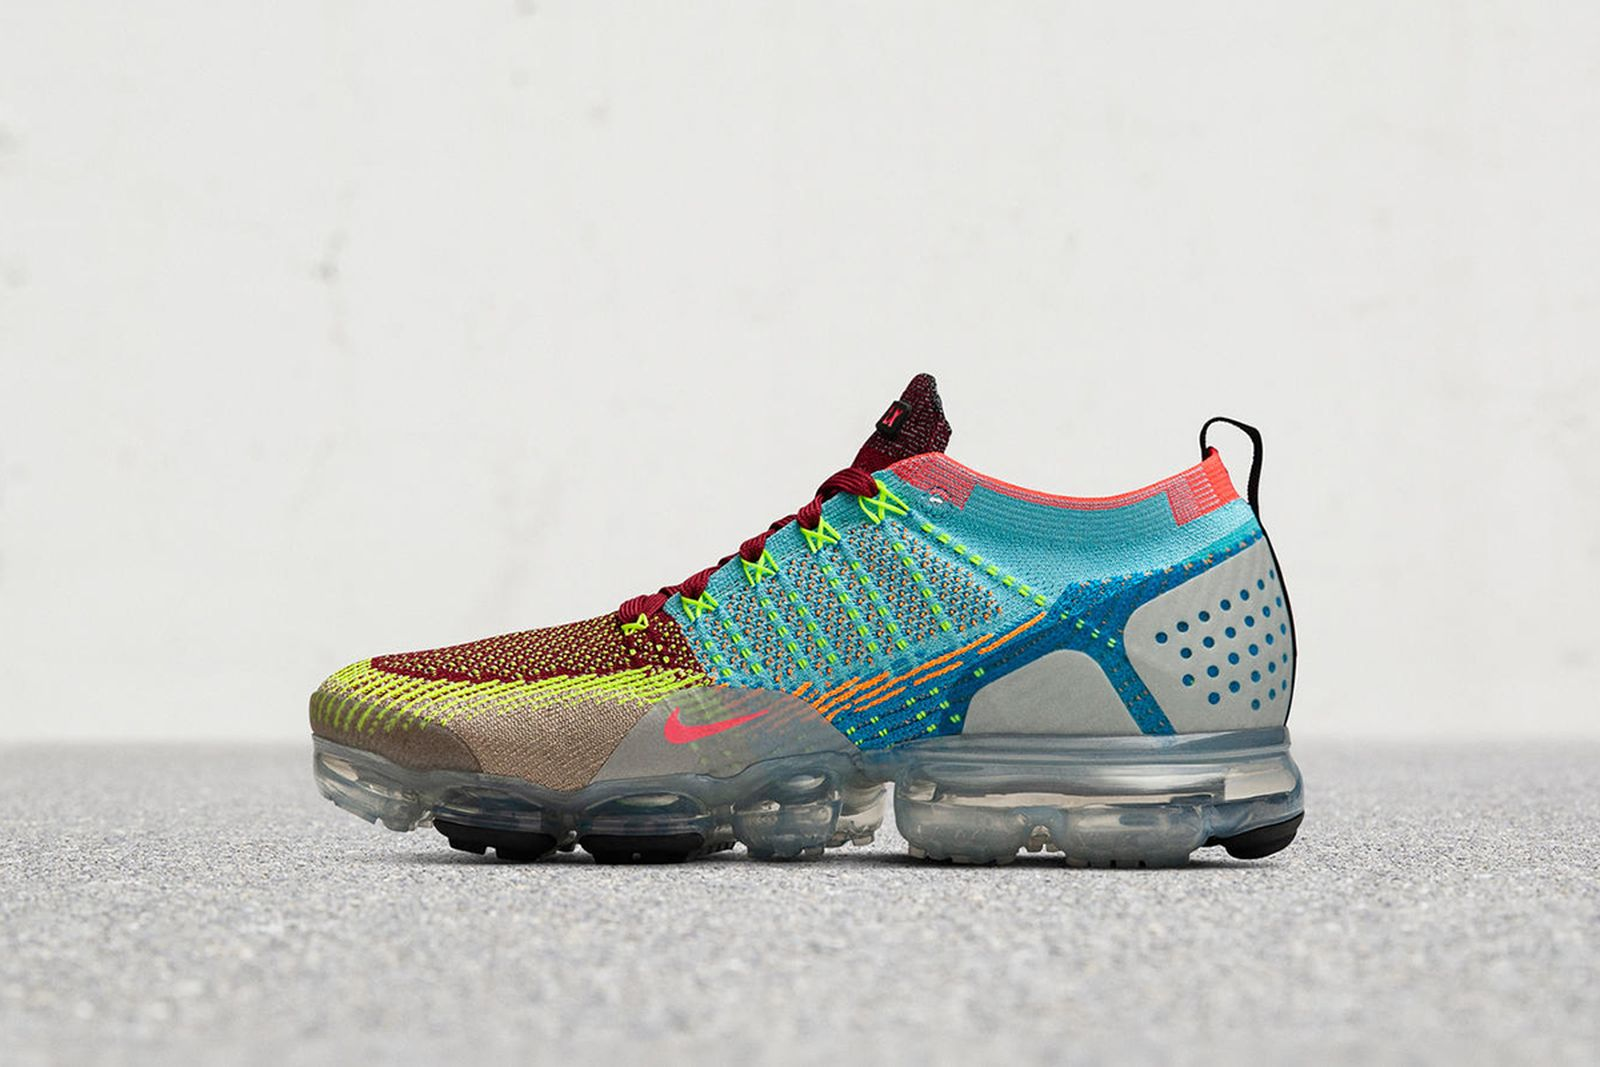 nike summer 2019 sustainable footwear preview Nike VaporMax 2 Random